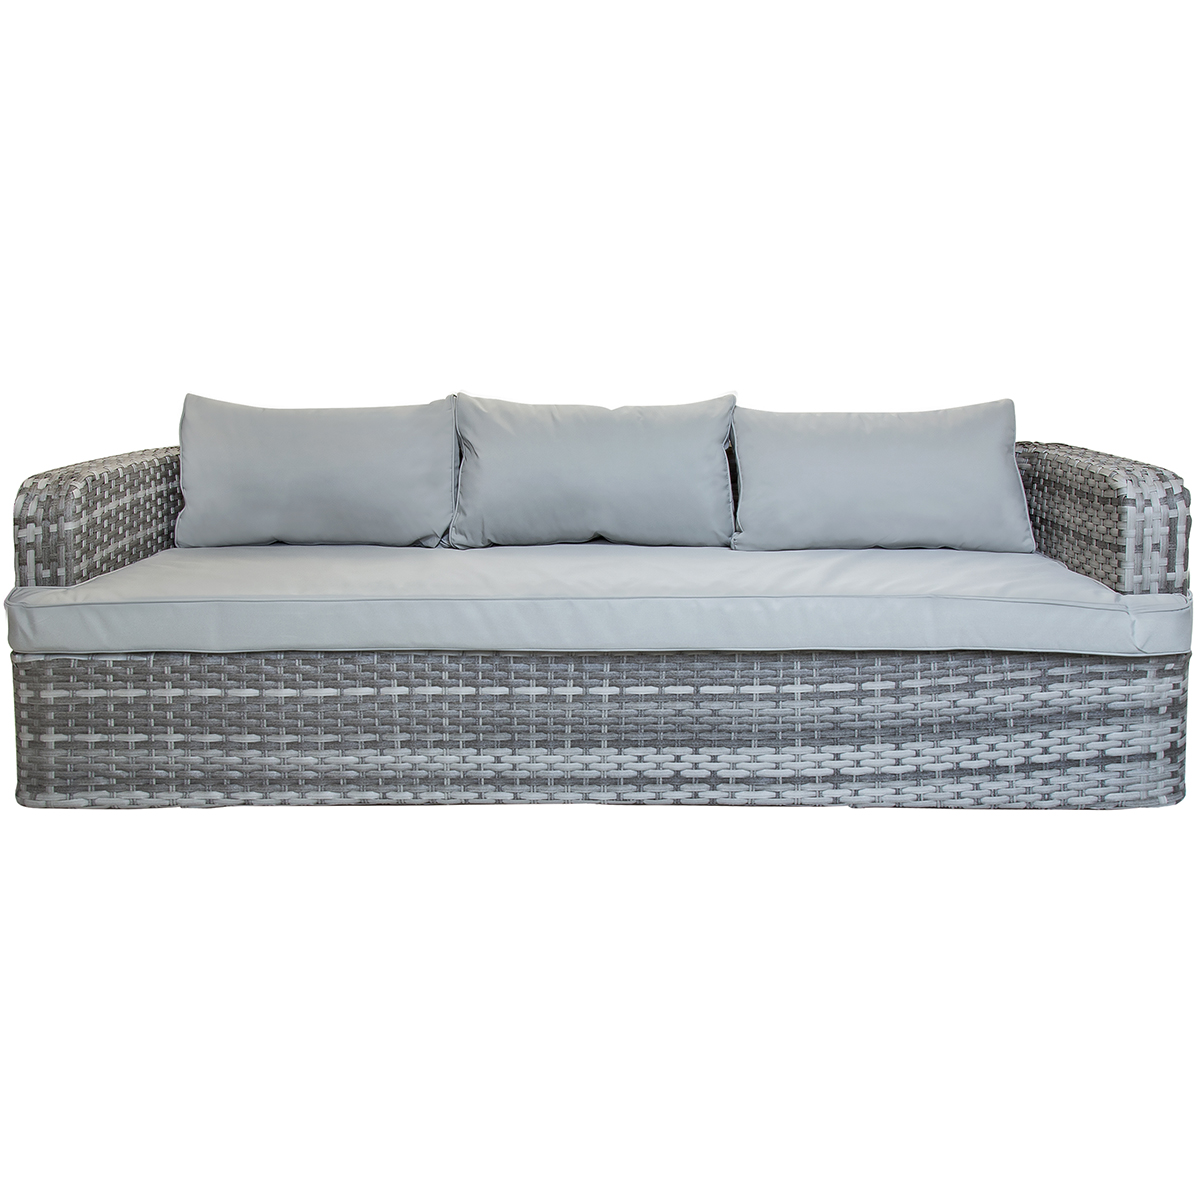 charles bentley rattan sofa with two large footstools table grey natural sand ebay. Black Bedroom Furniture Sets. Home Design Ideas